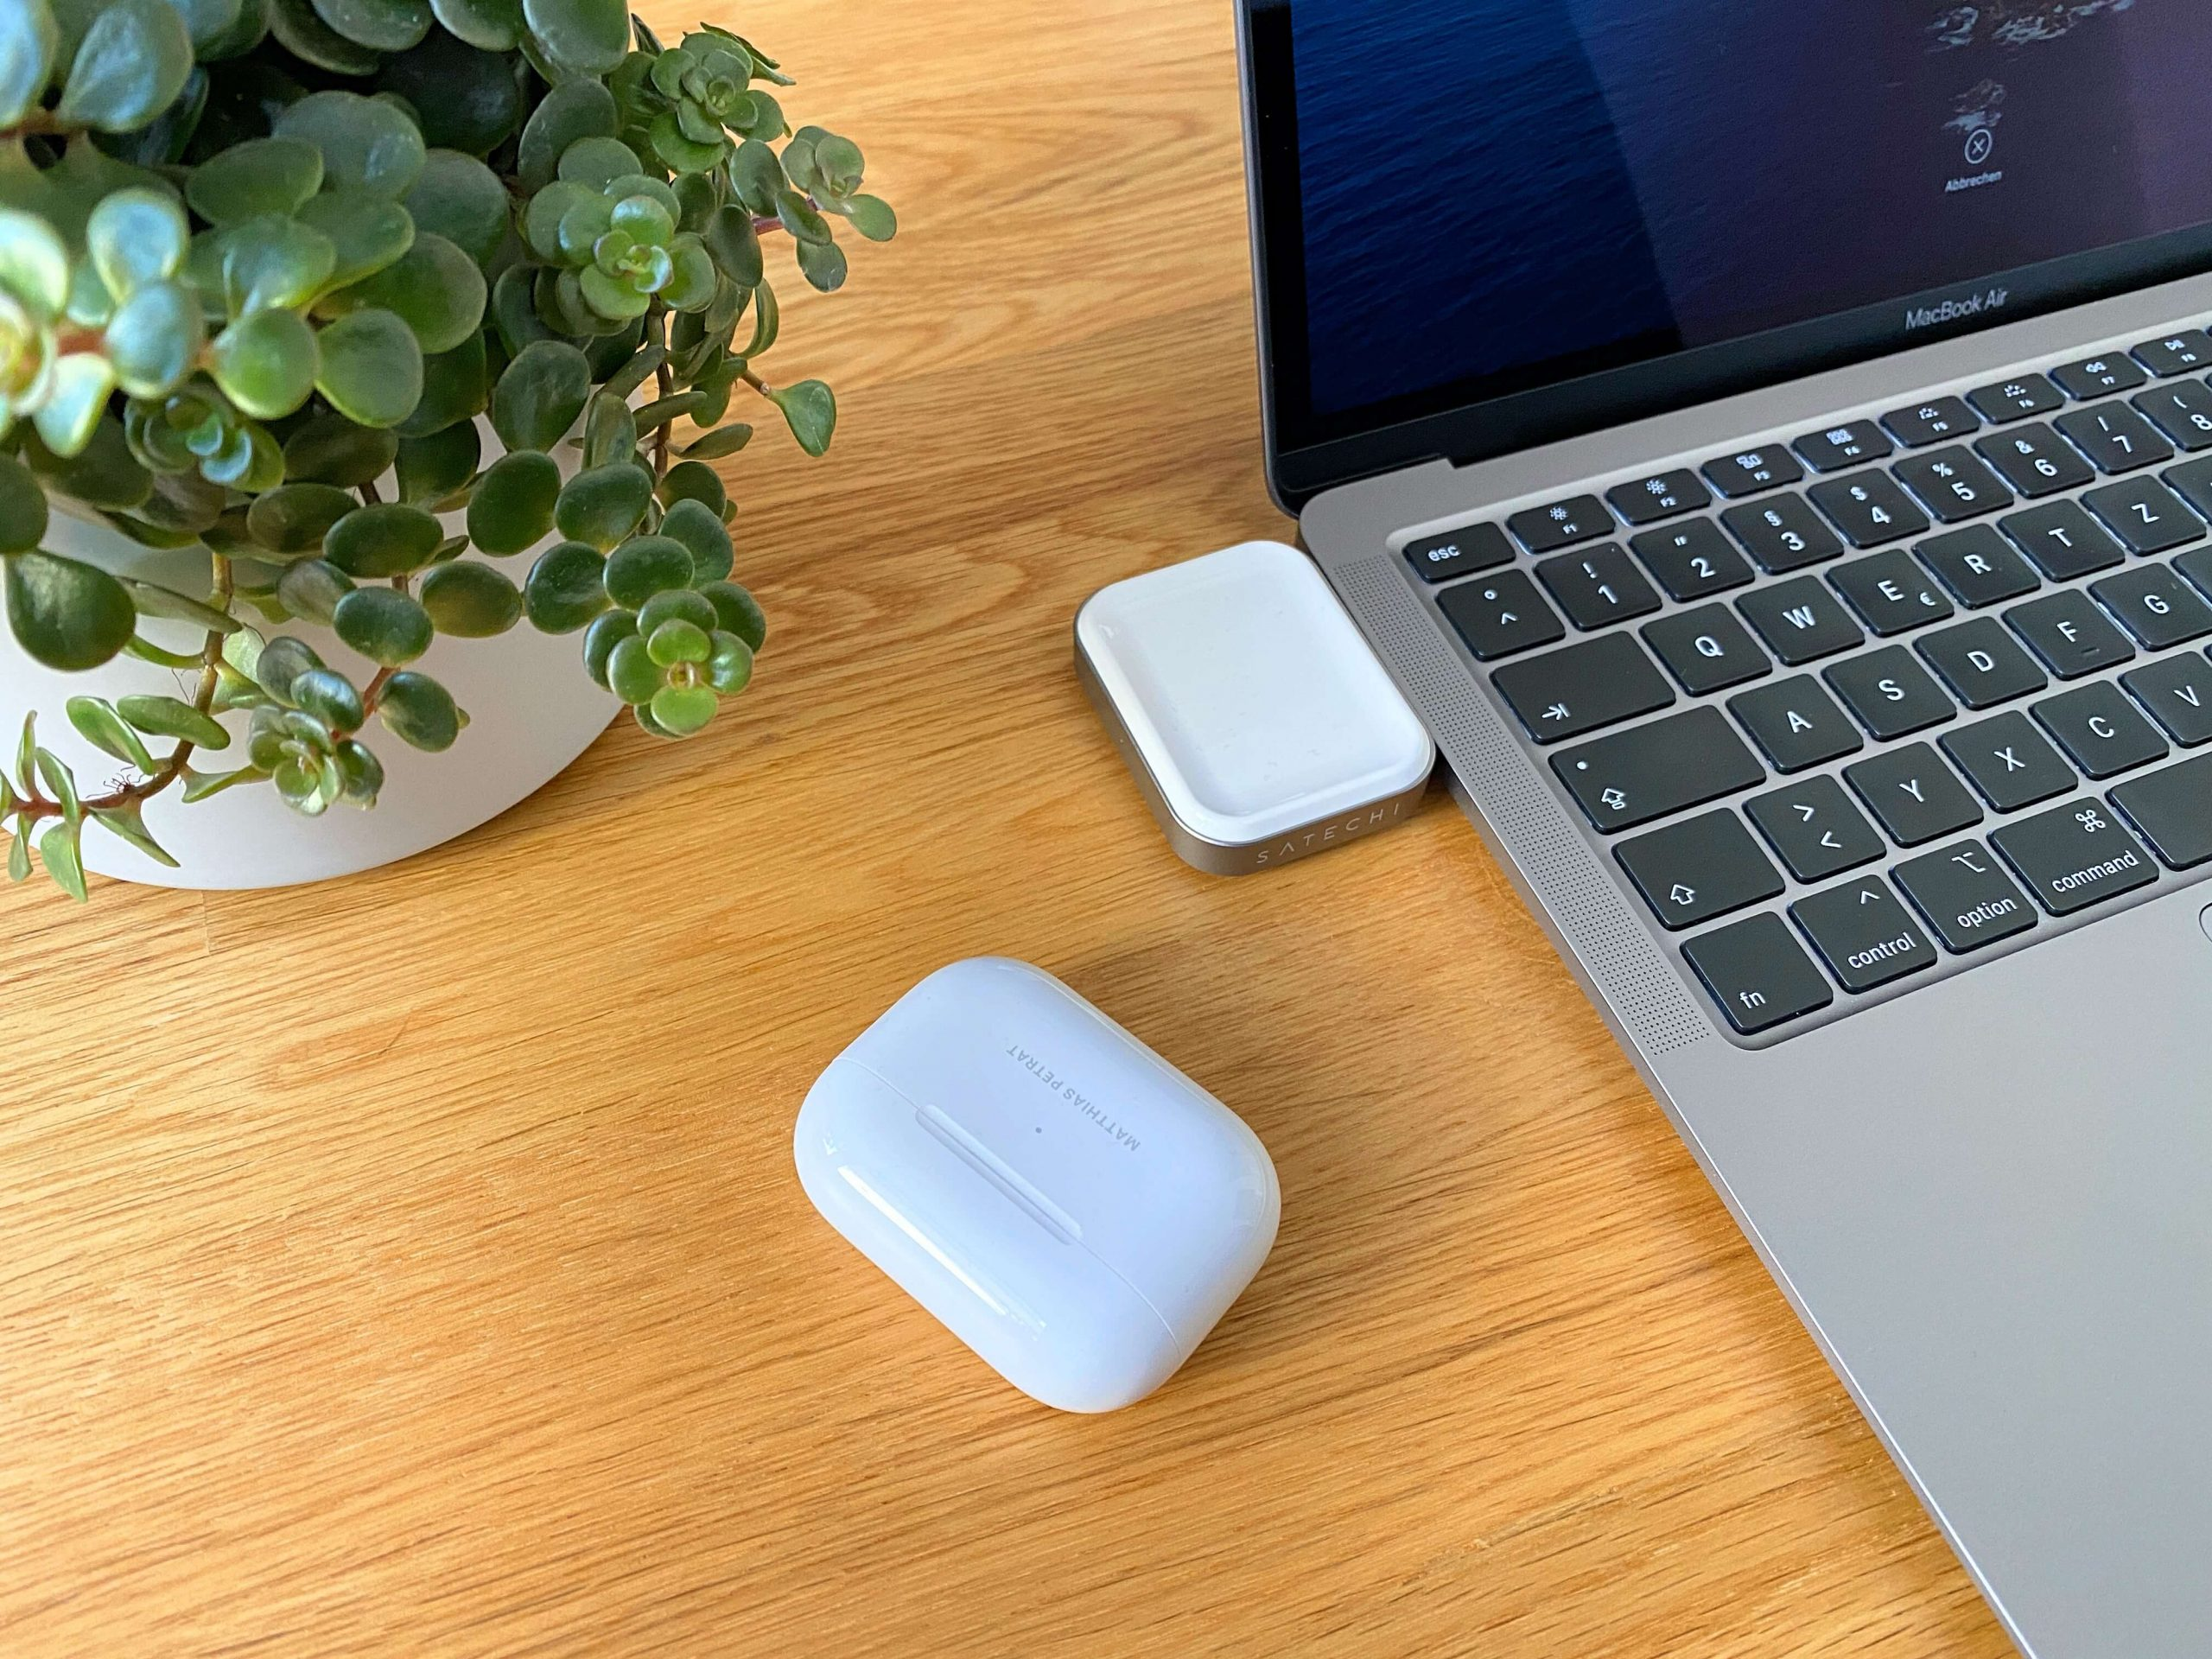 AirPods-Charger-von-Satechi-ohne-Kabel-via-USB-C-laden2-scaled AirPods Charger von Satechi - ohne Kabel via USB-C laden